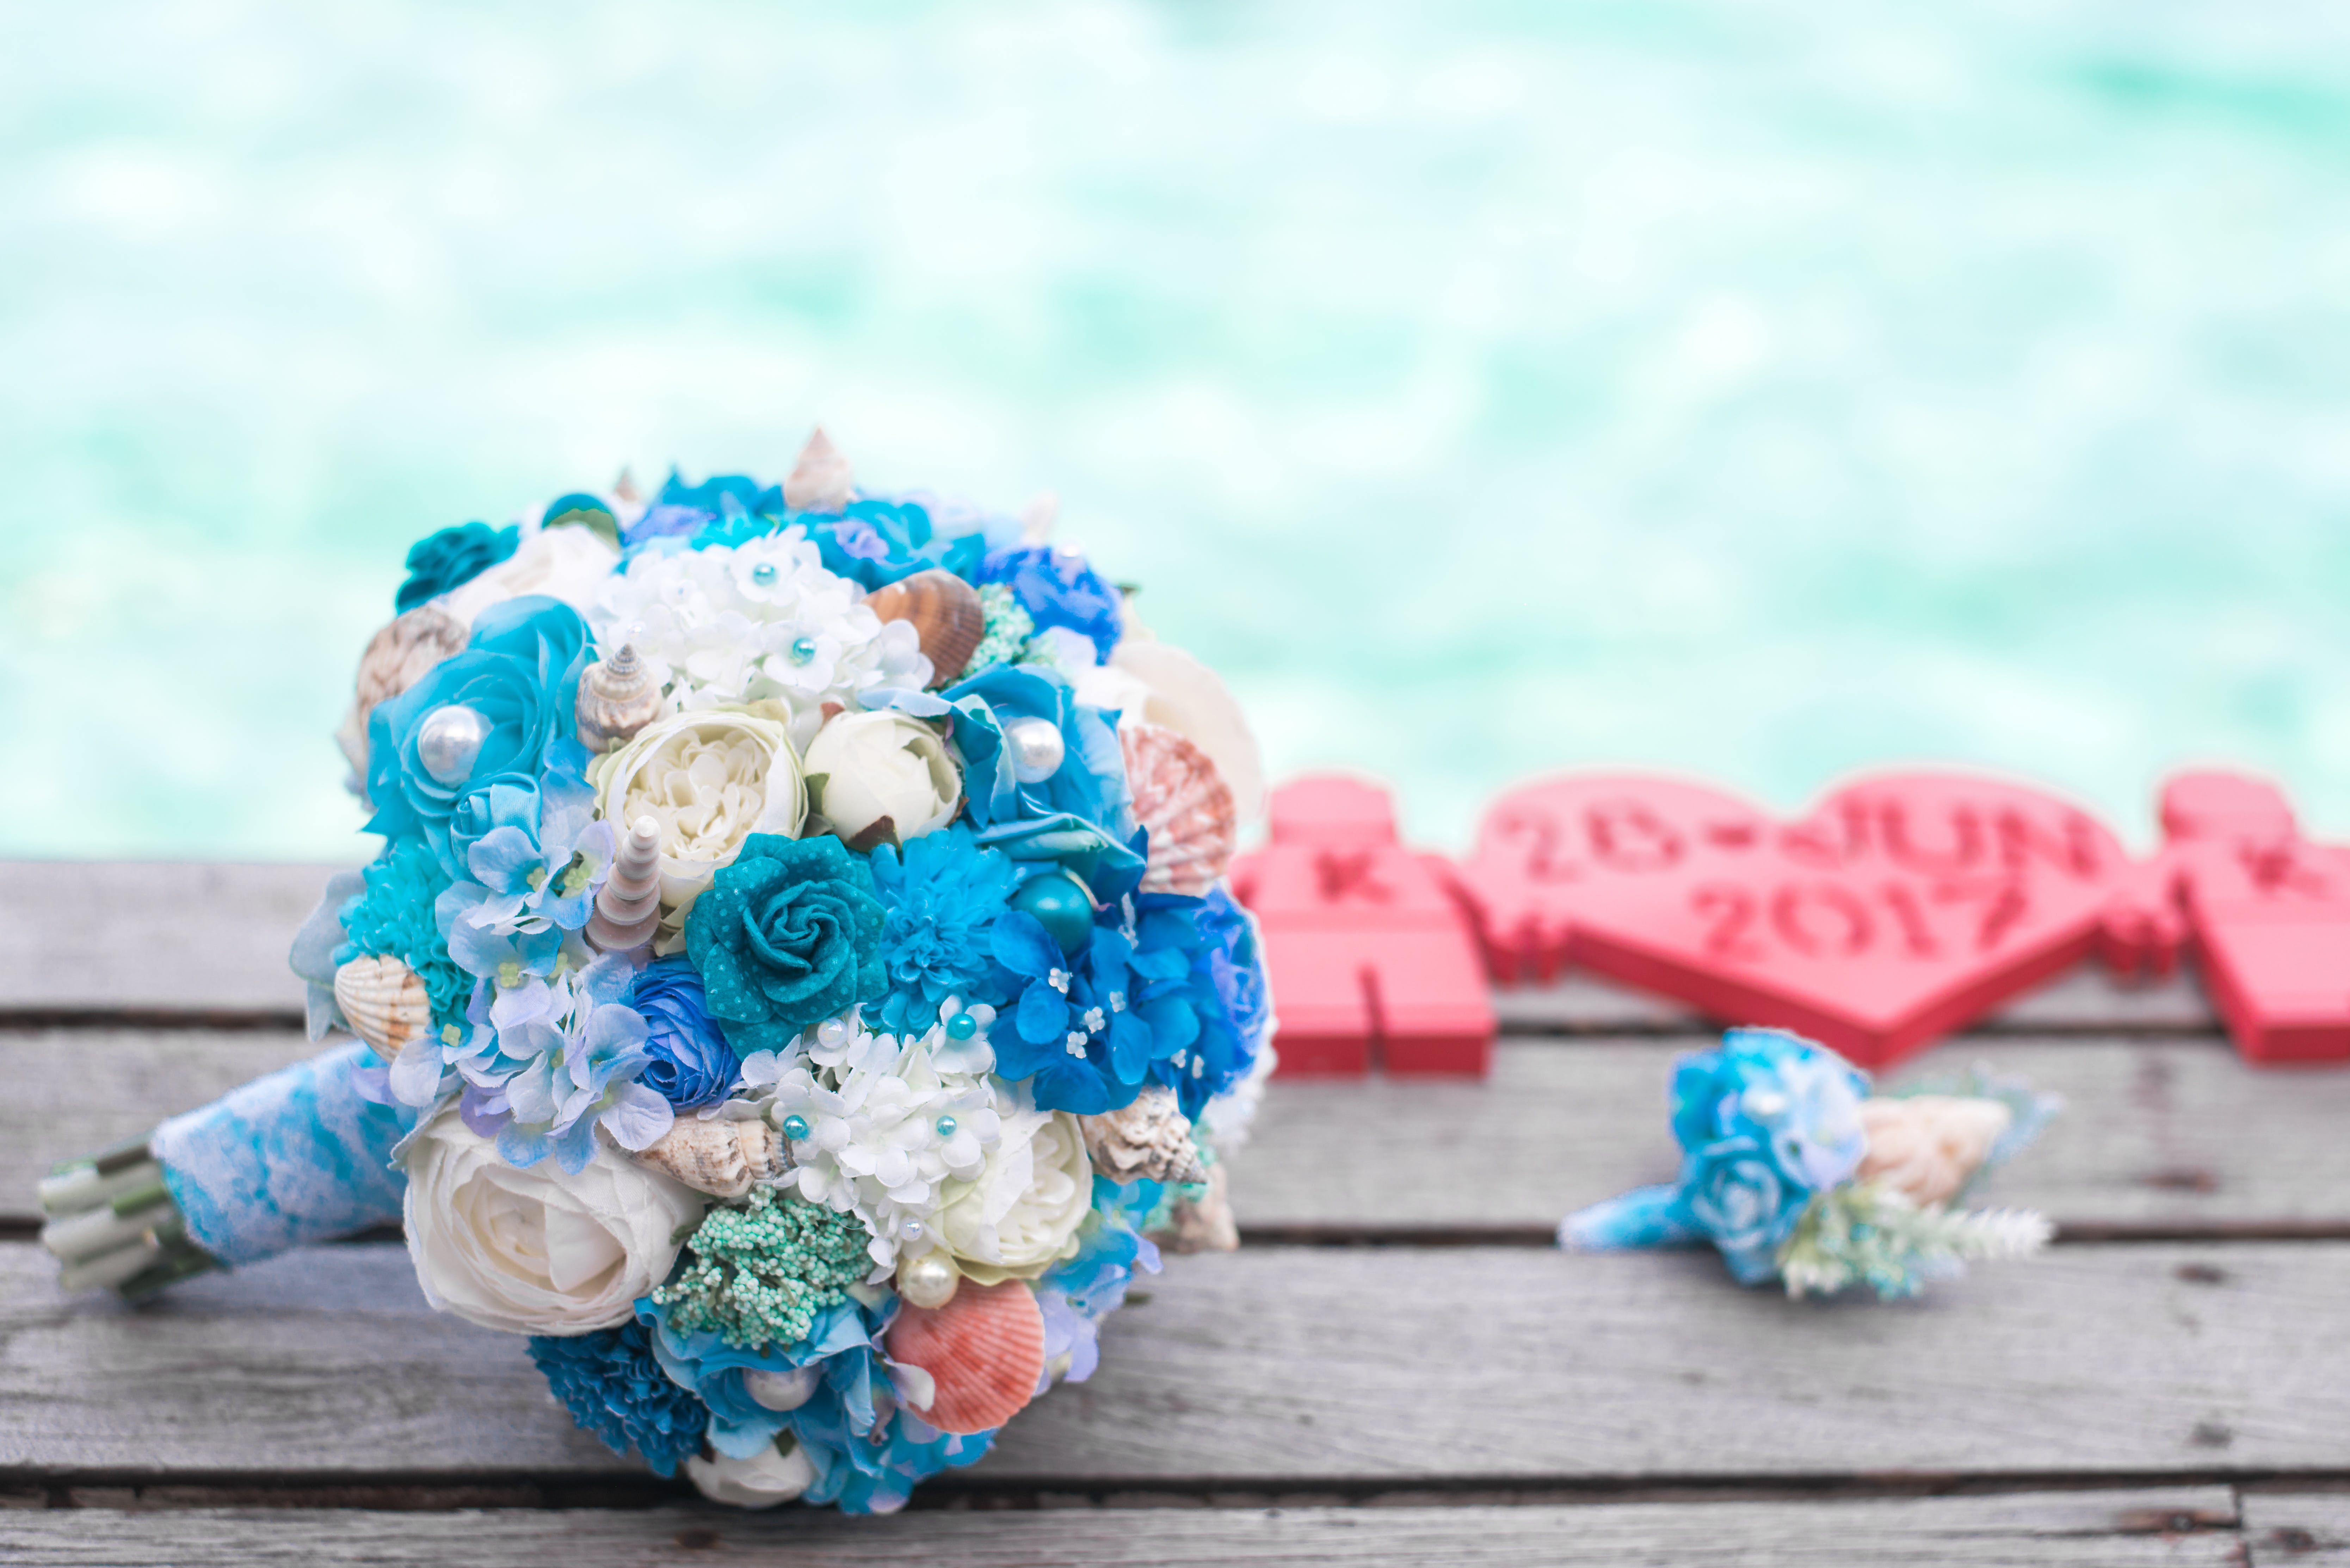 Bouquet of Blue and White Flowers on Top of Brown Surface